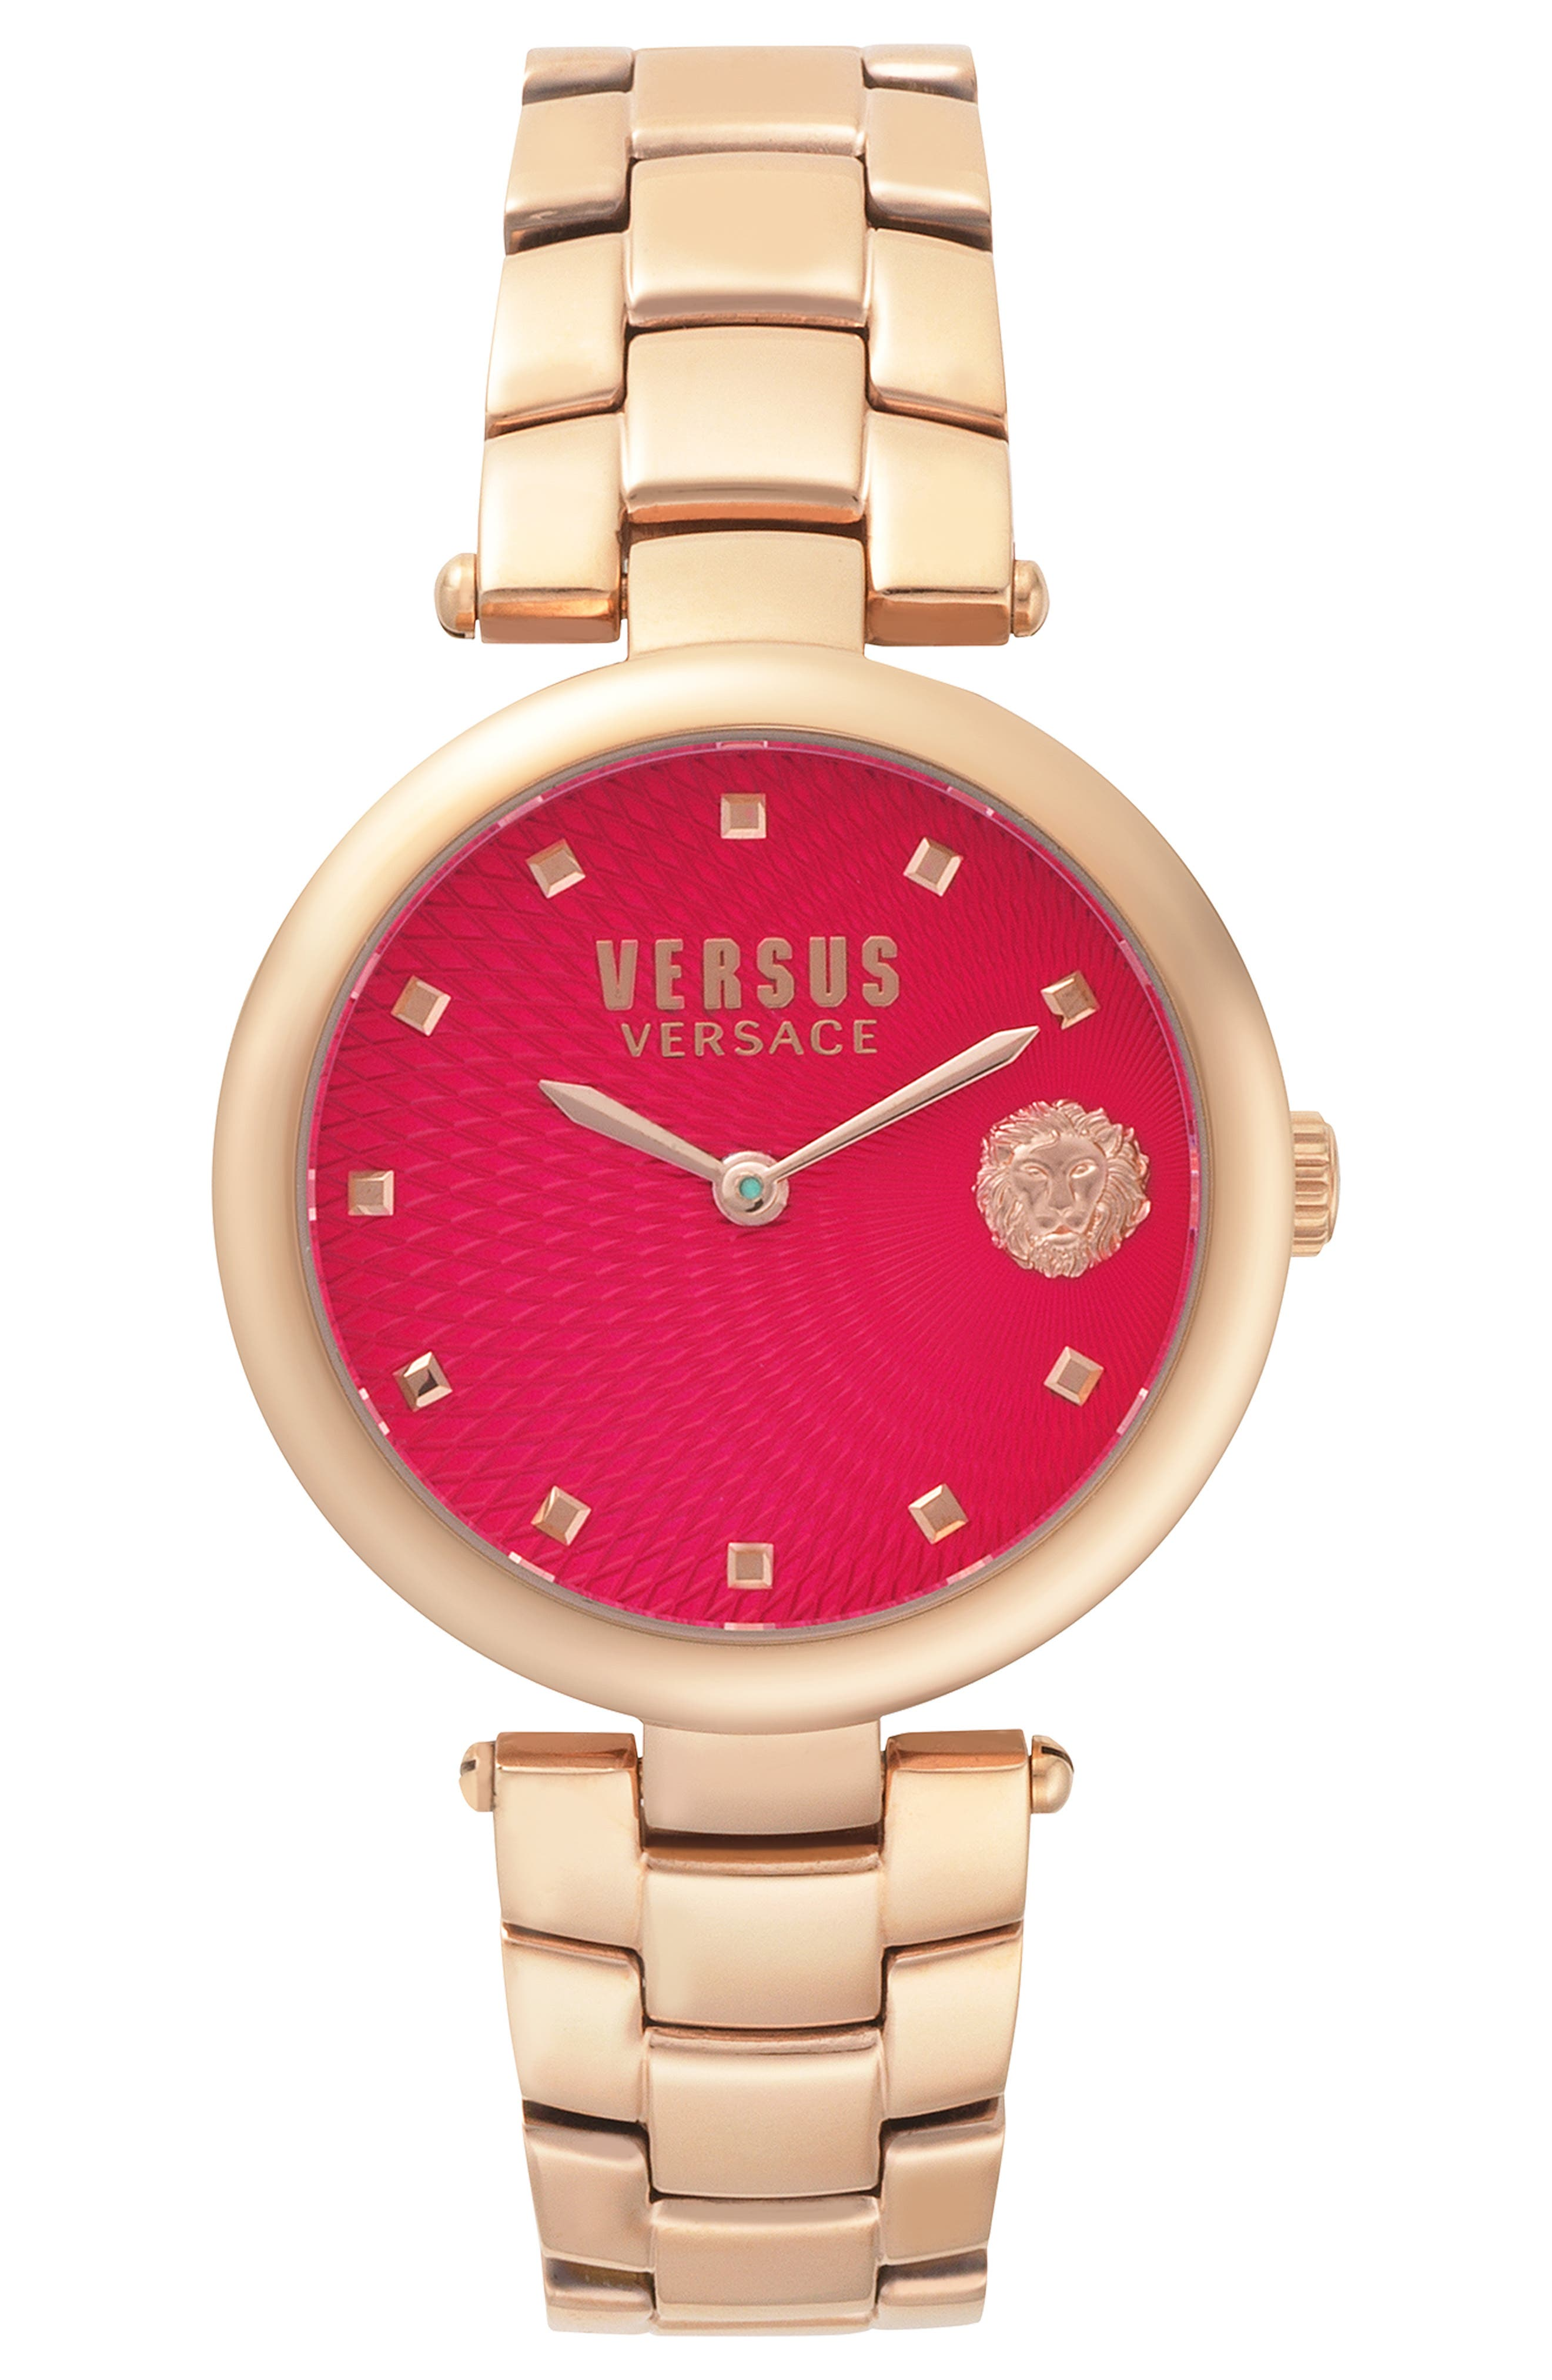 VERSUS VERSACE, Buffle Bay Bracelet Watch, 36mm, Main thumbnail 1, color, ROSE GOLD/ RED